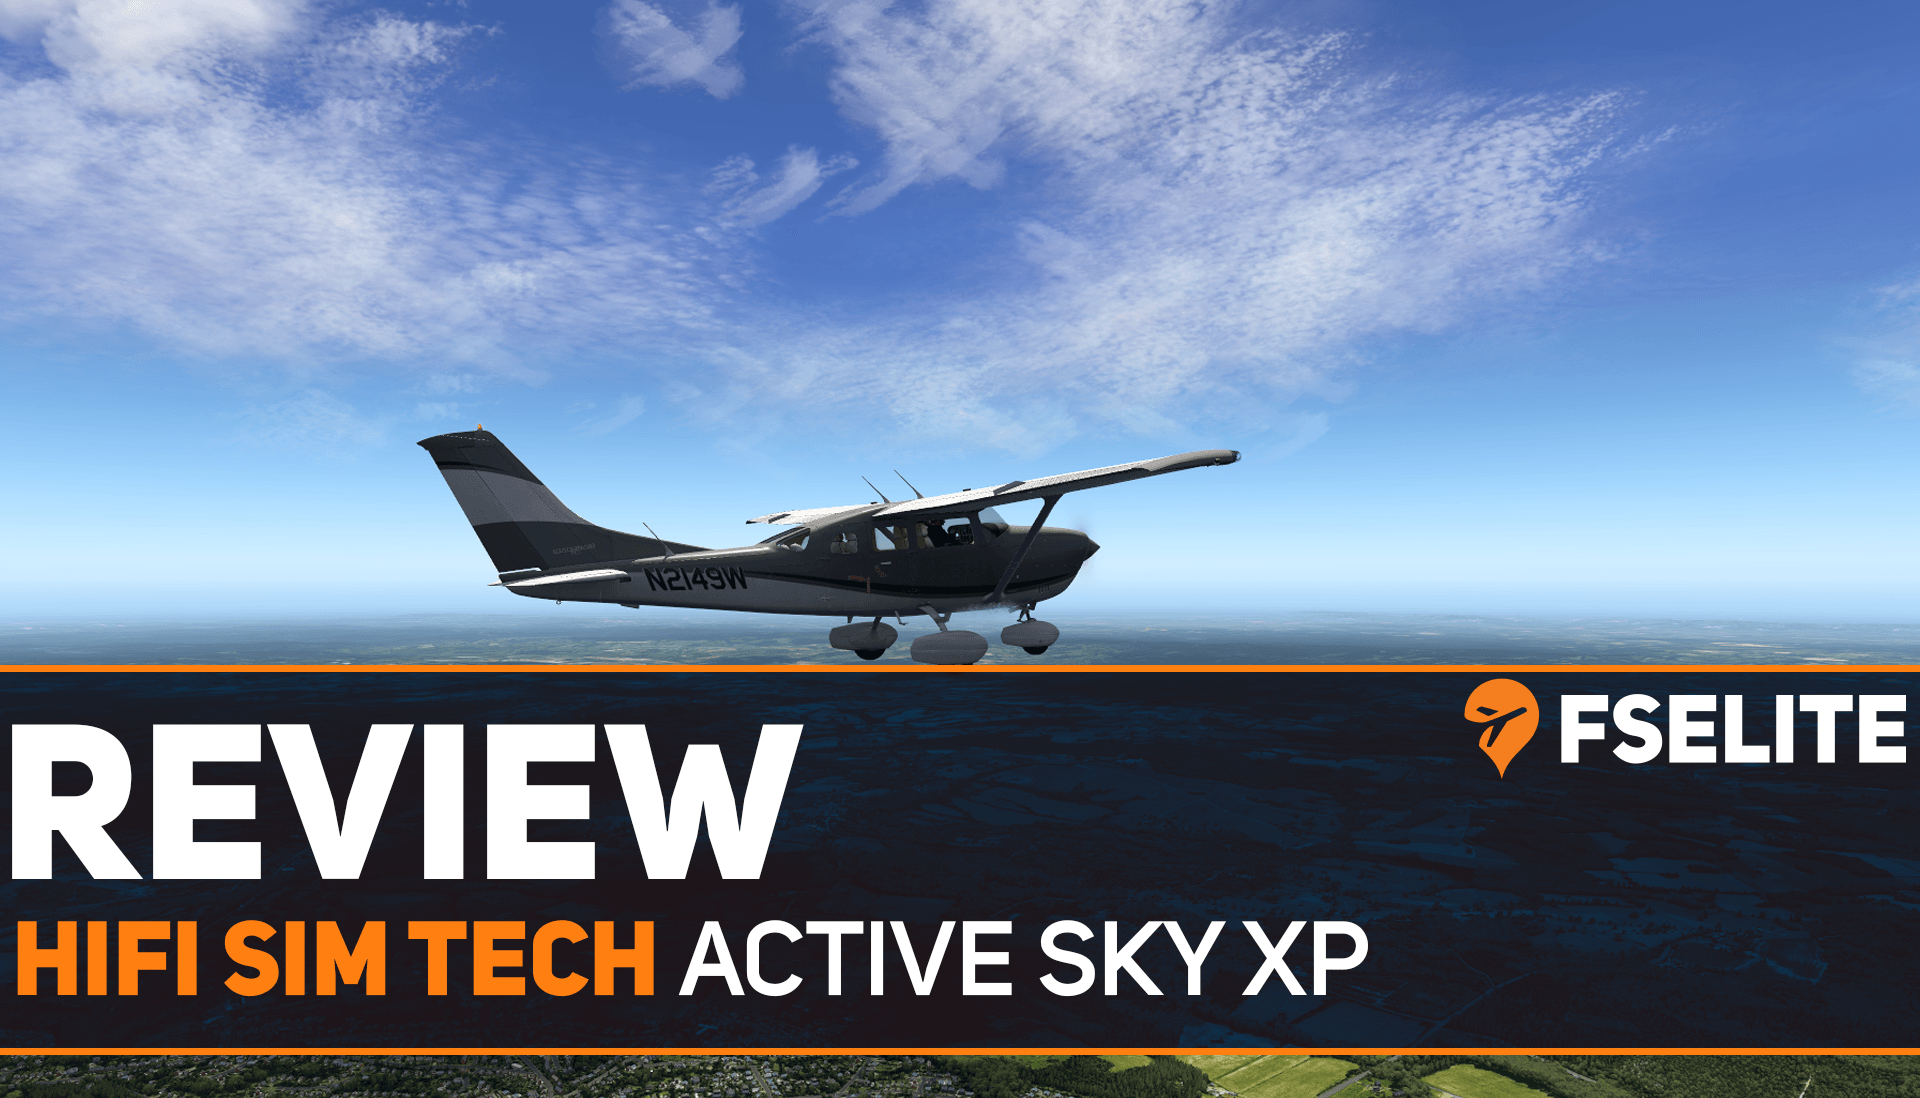 X Plane Aspx Review Hifisimtech Review Featured Imag